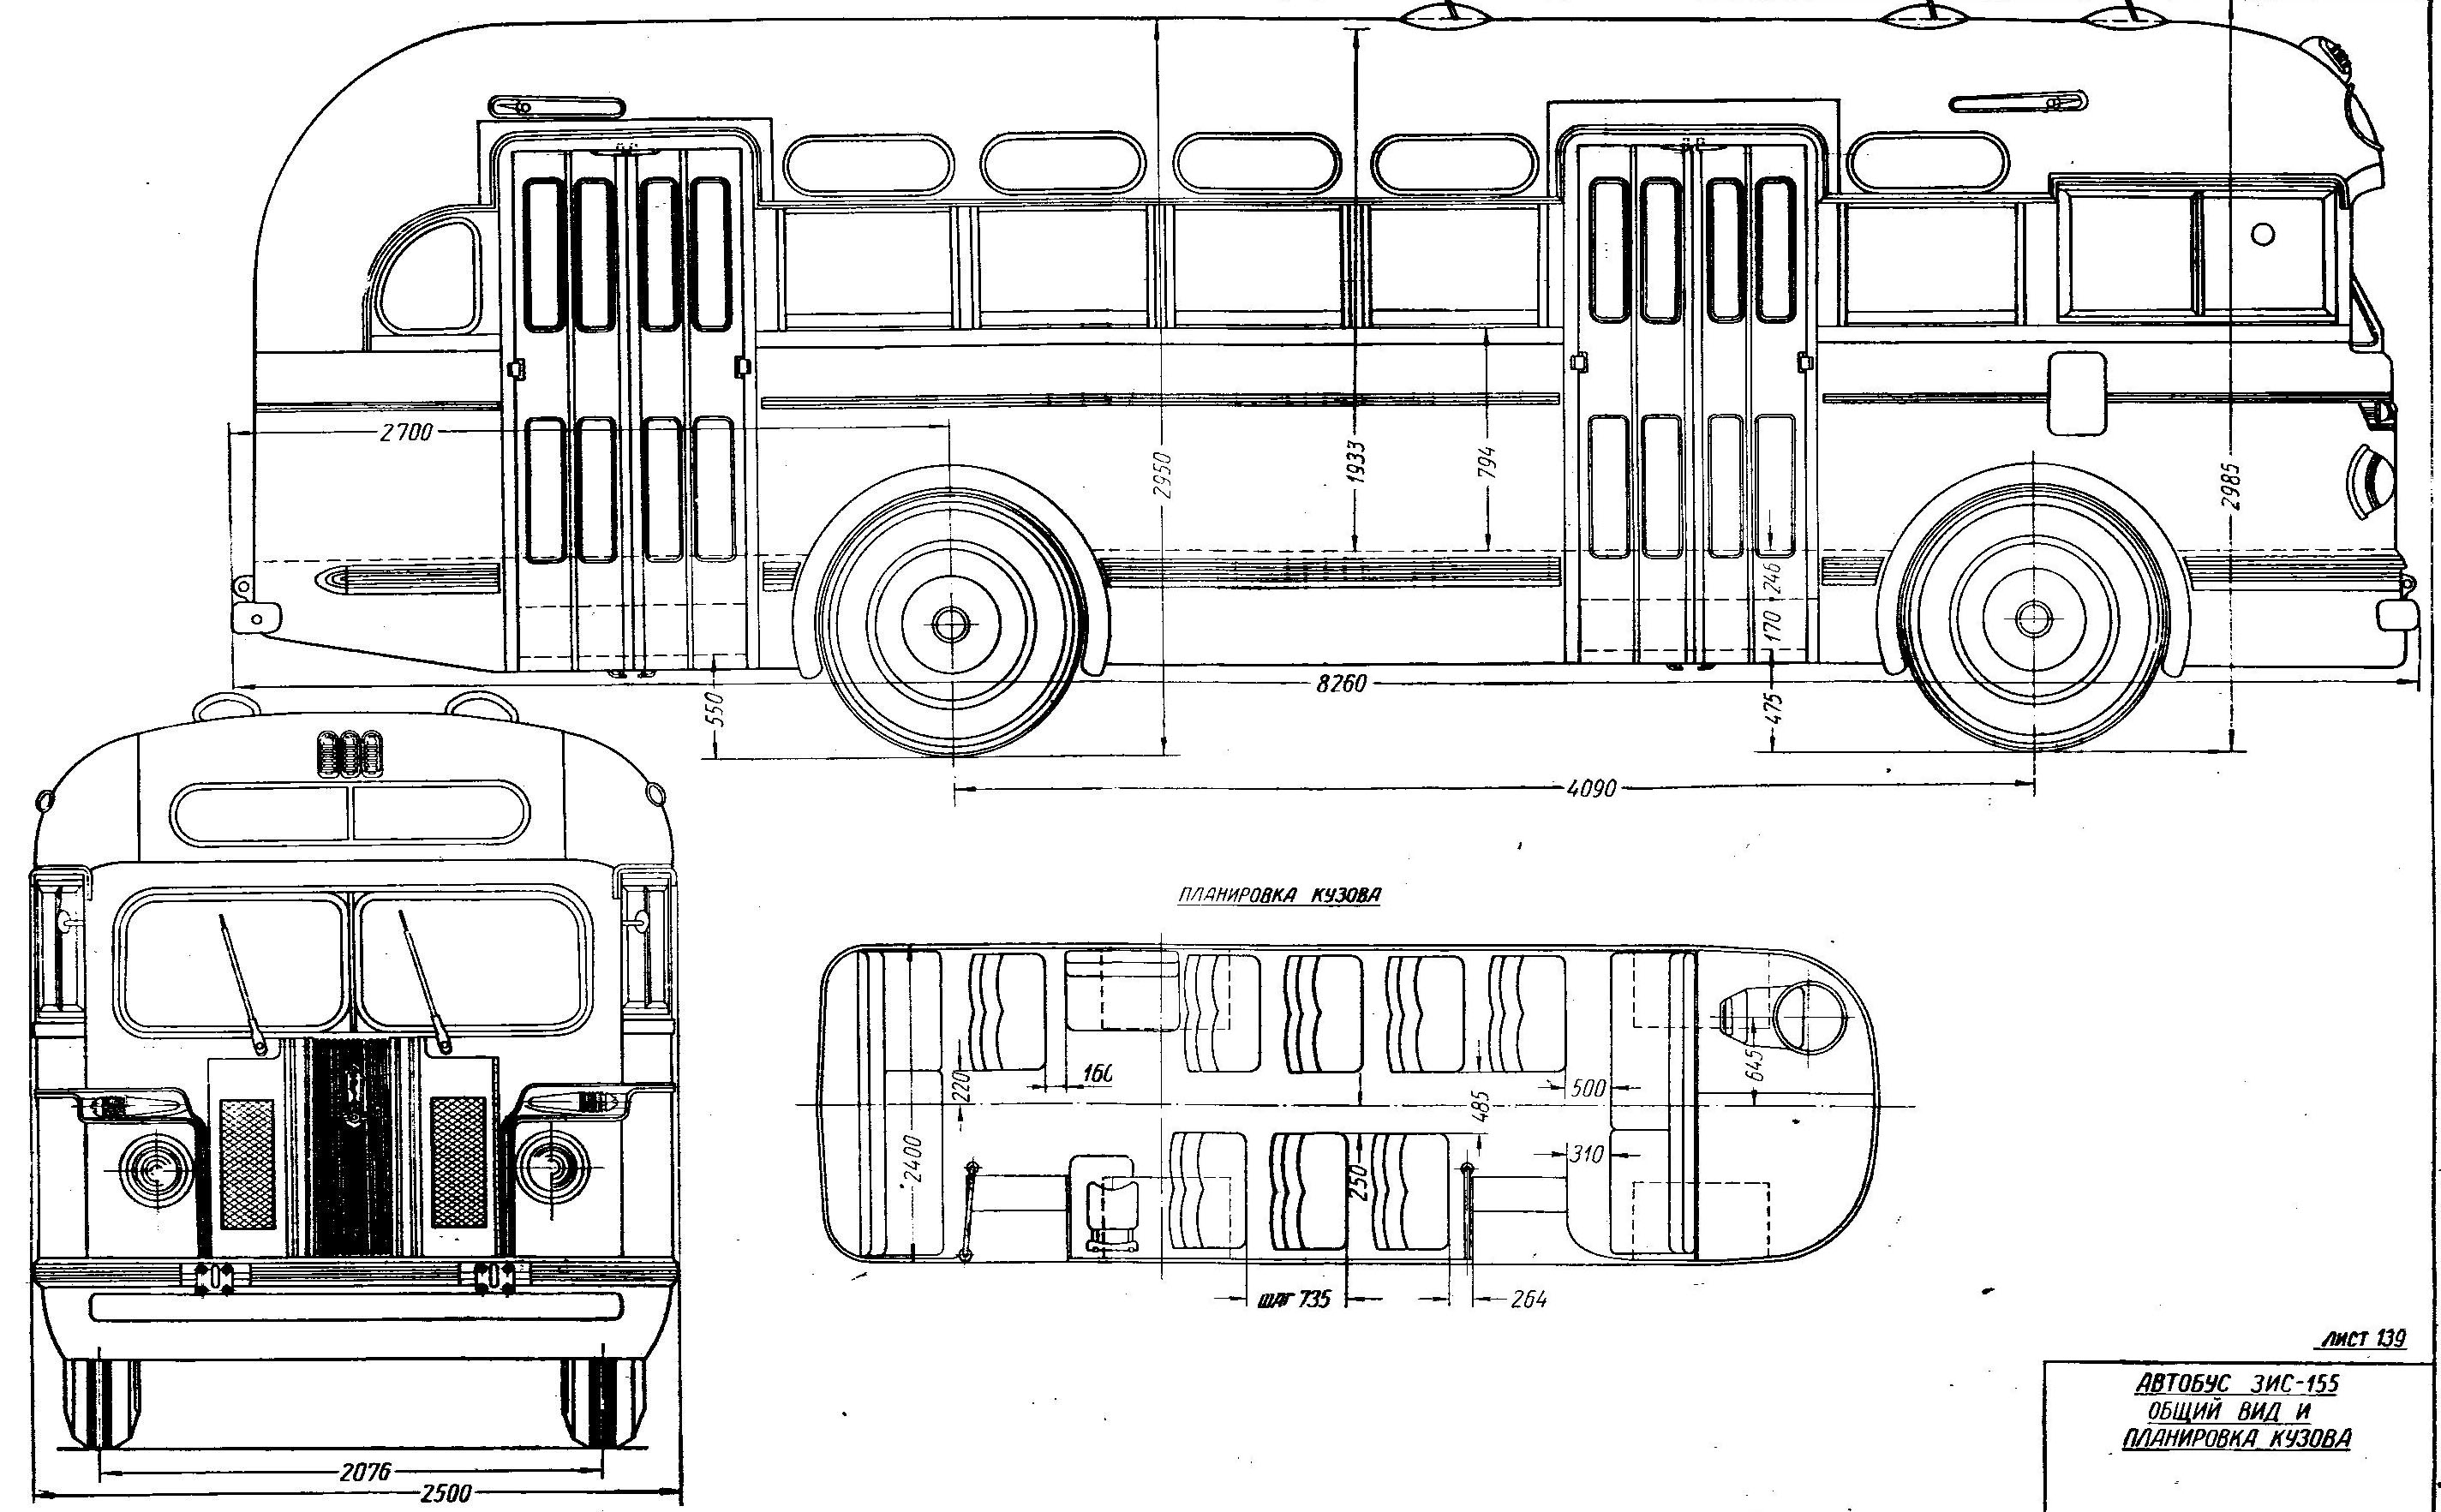 wiring diagram database  tags: #gmc 2001 corbeil buses#gmc corbeil school  buses#corbeil gmc buses orange · «